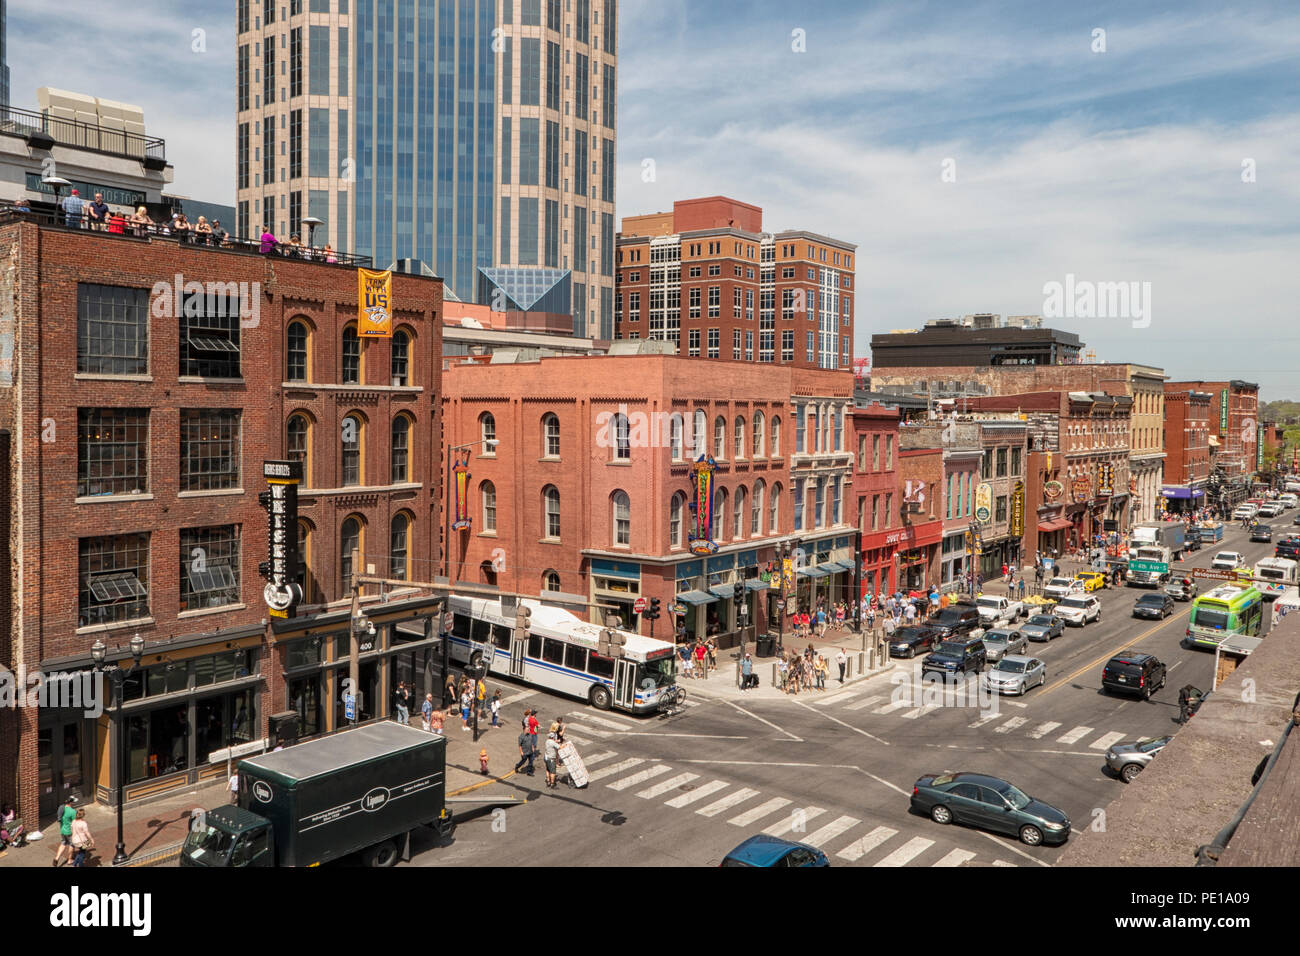 Aerial view of Broadway entertainment district with rooftop bars, restaurants and entertainment venues for live music, Nashville, TN, USA - Stock Image